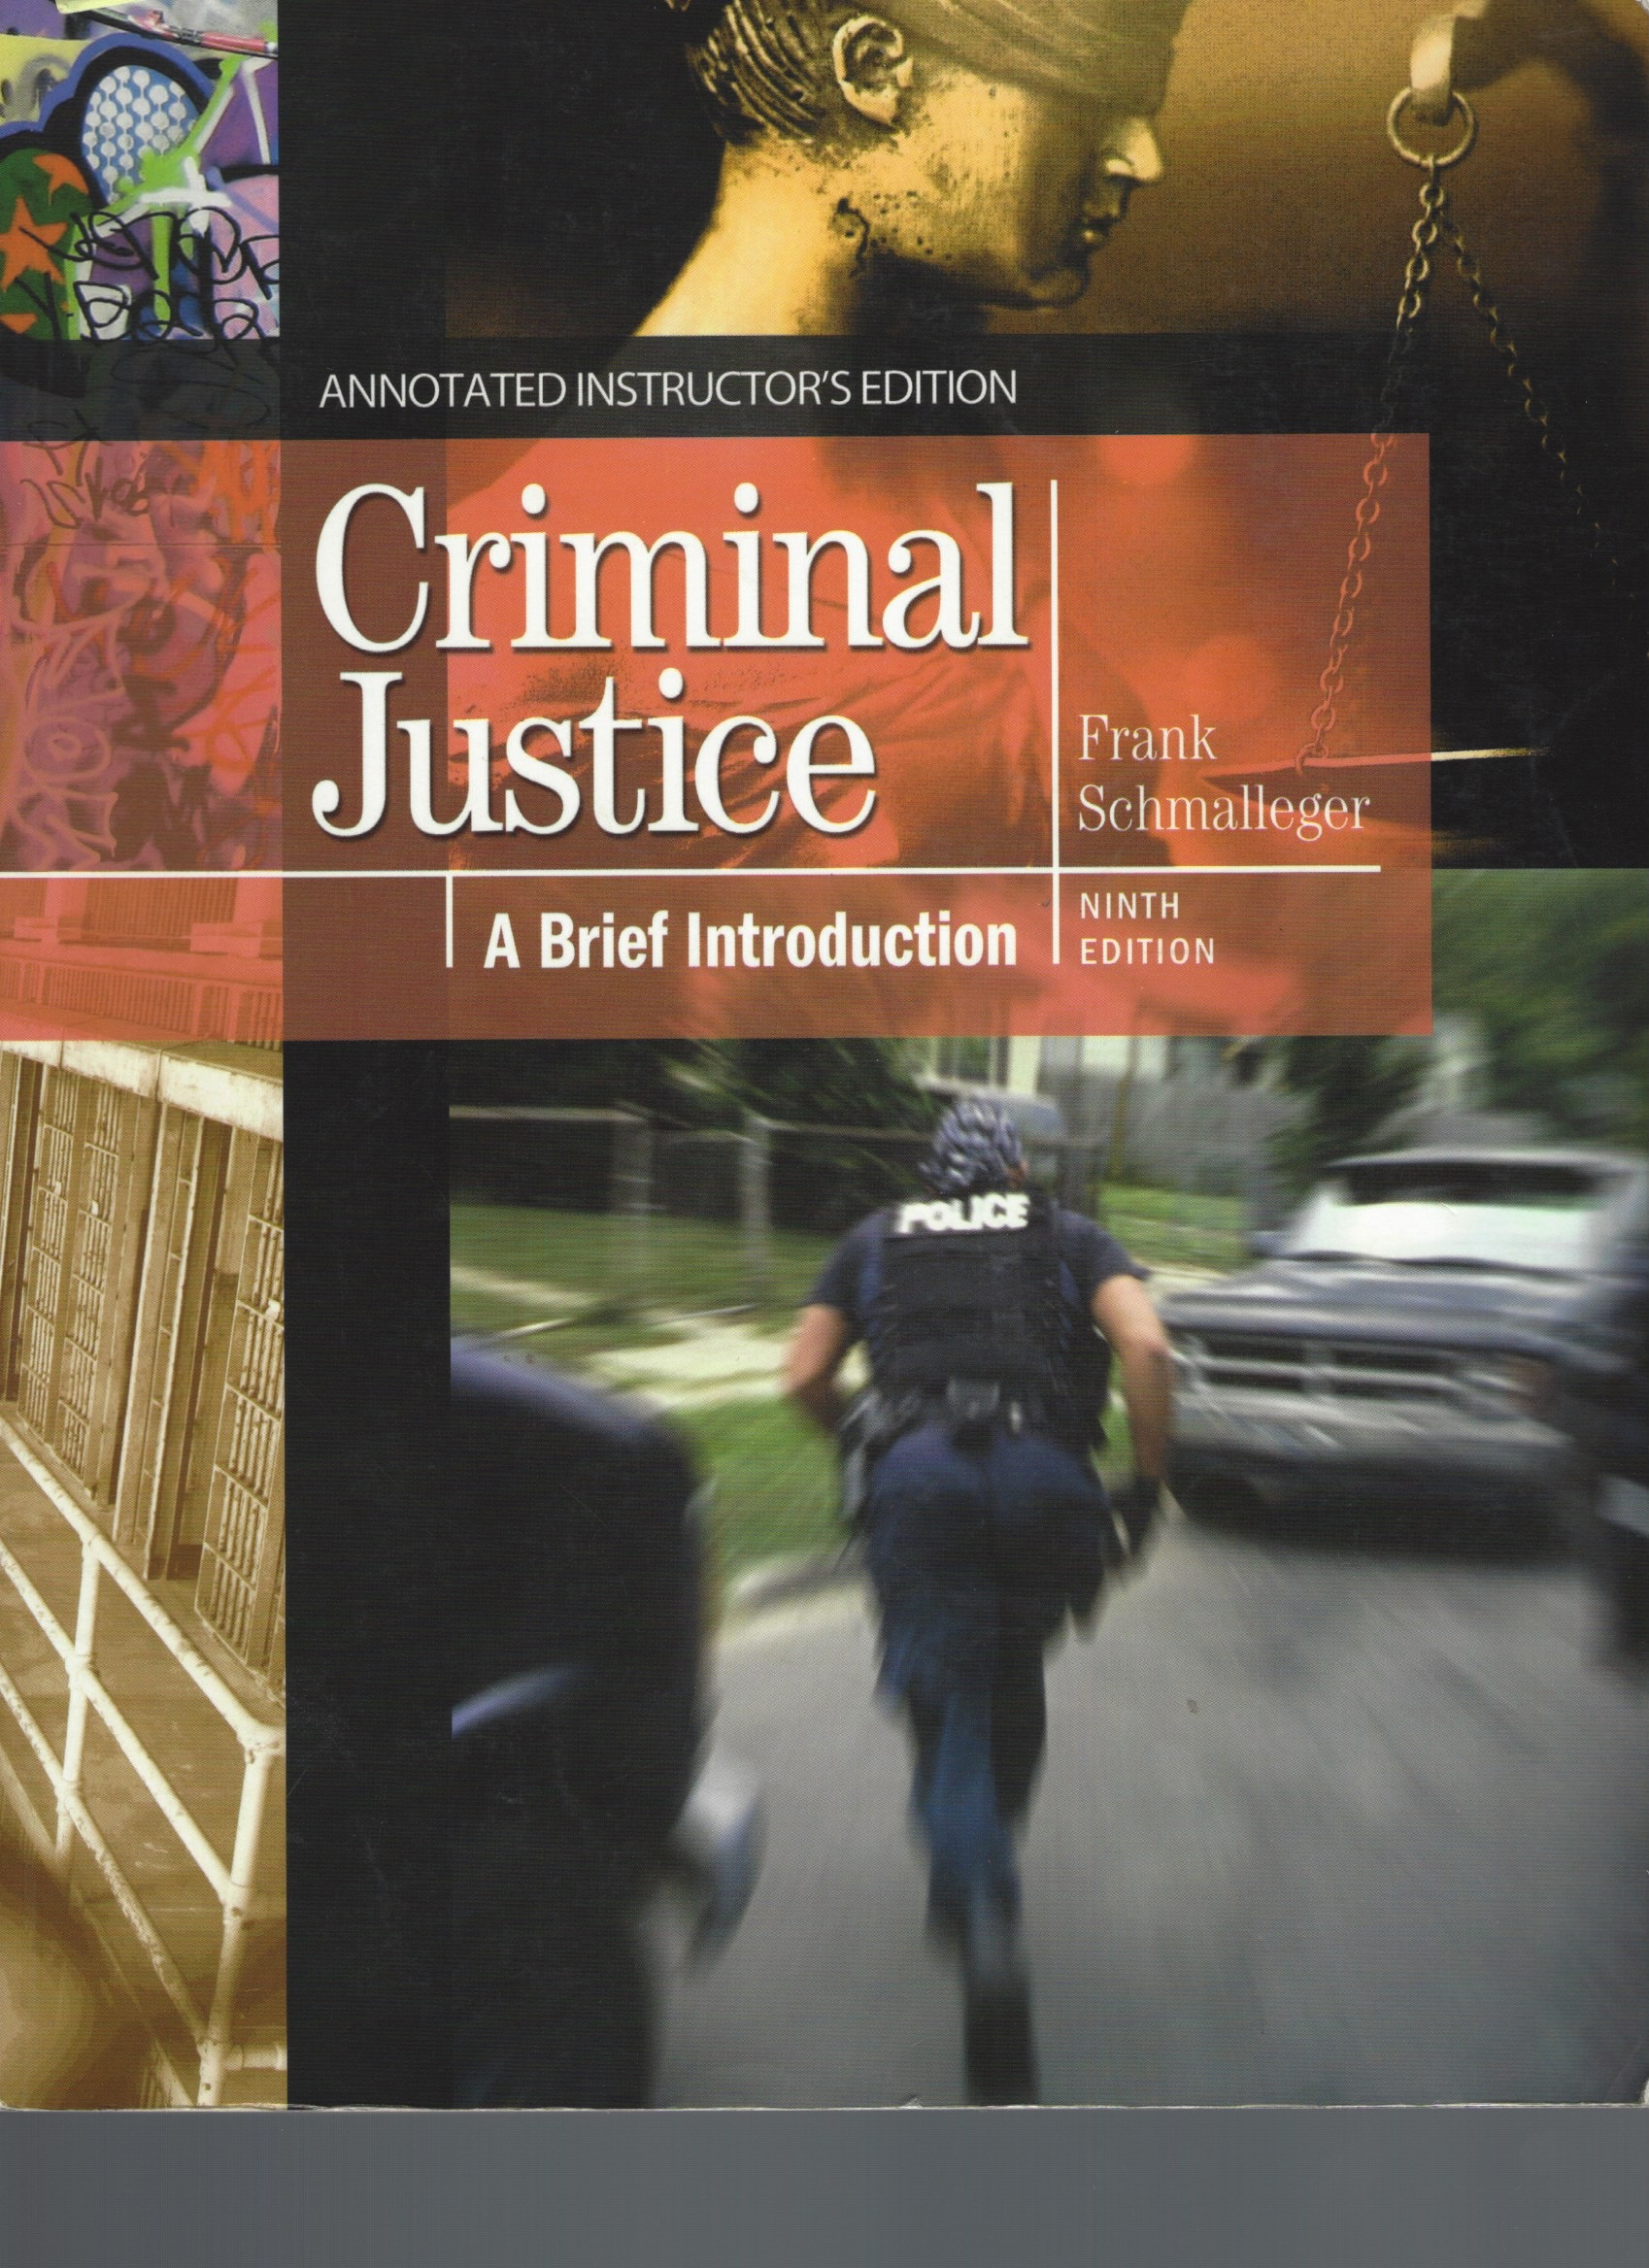 an analysis of the justice concept and a brief introduction to the justice crimes A crime-analysis and police-management process built on crime mapping that was developed by the new york city police department in the mid- 1990's a minor violation of the law (sometimes called a petty crime ) that demoralizes community residents and business people.